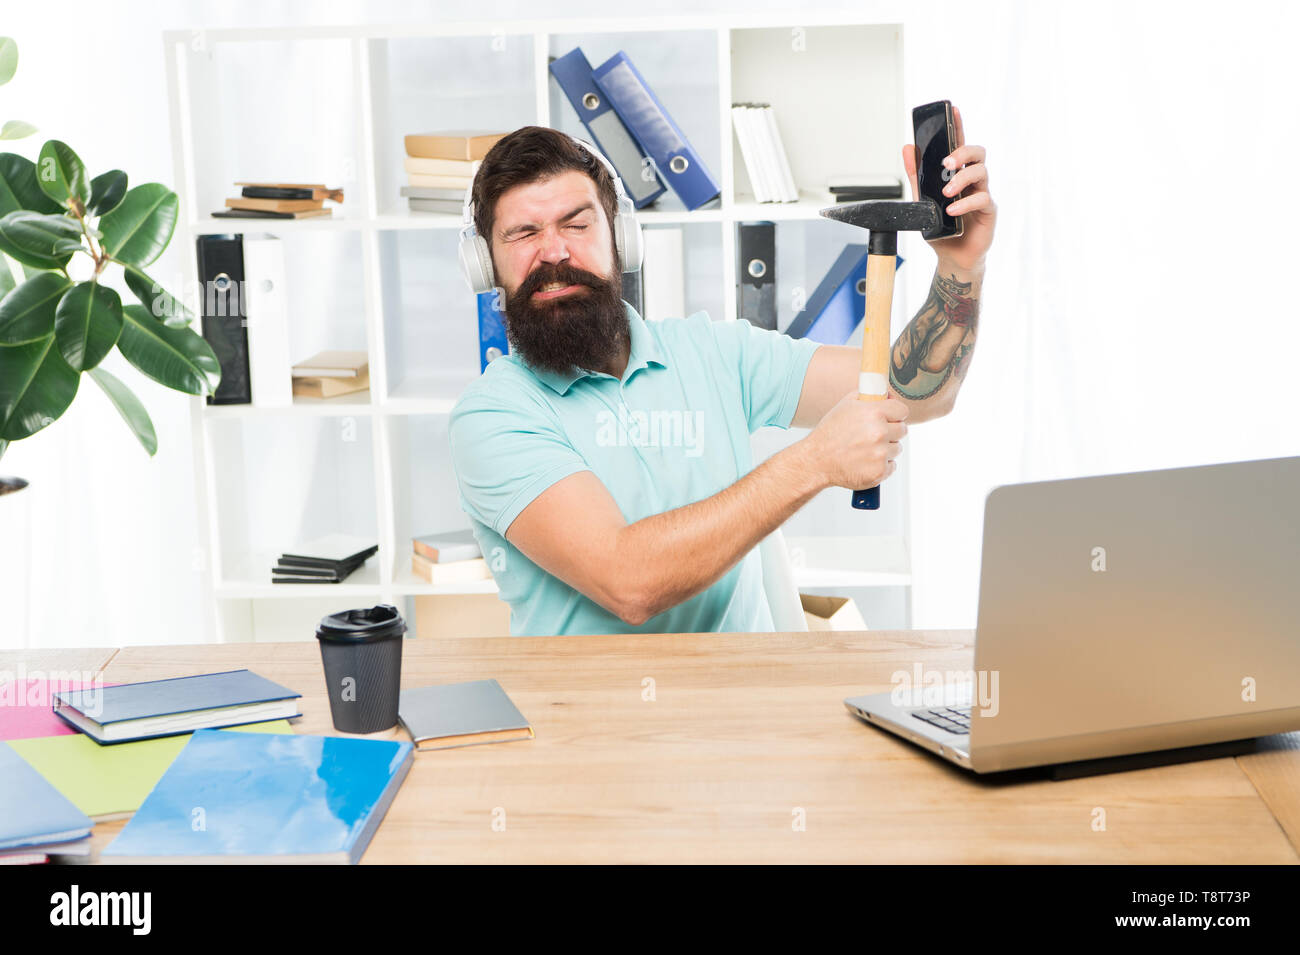 Stressful job at call center. Man bearded guy headphones office hammer smartphone. Spoiled communication. Failed mobile negotiations. Most annoying thing about work in call center. Incoming call. - Stock Image